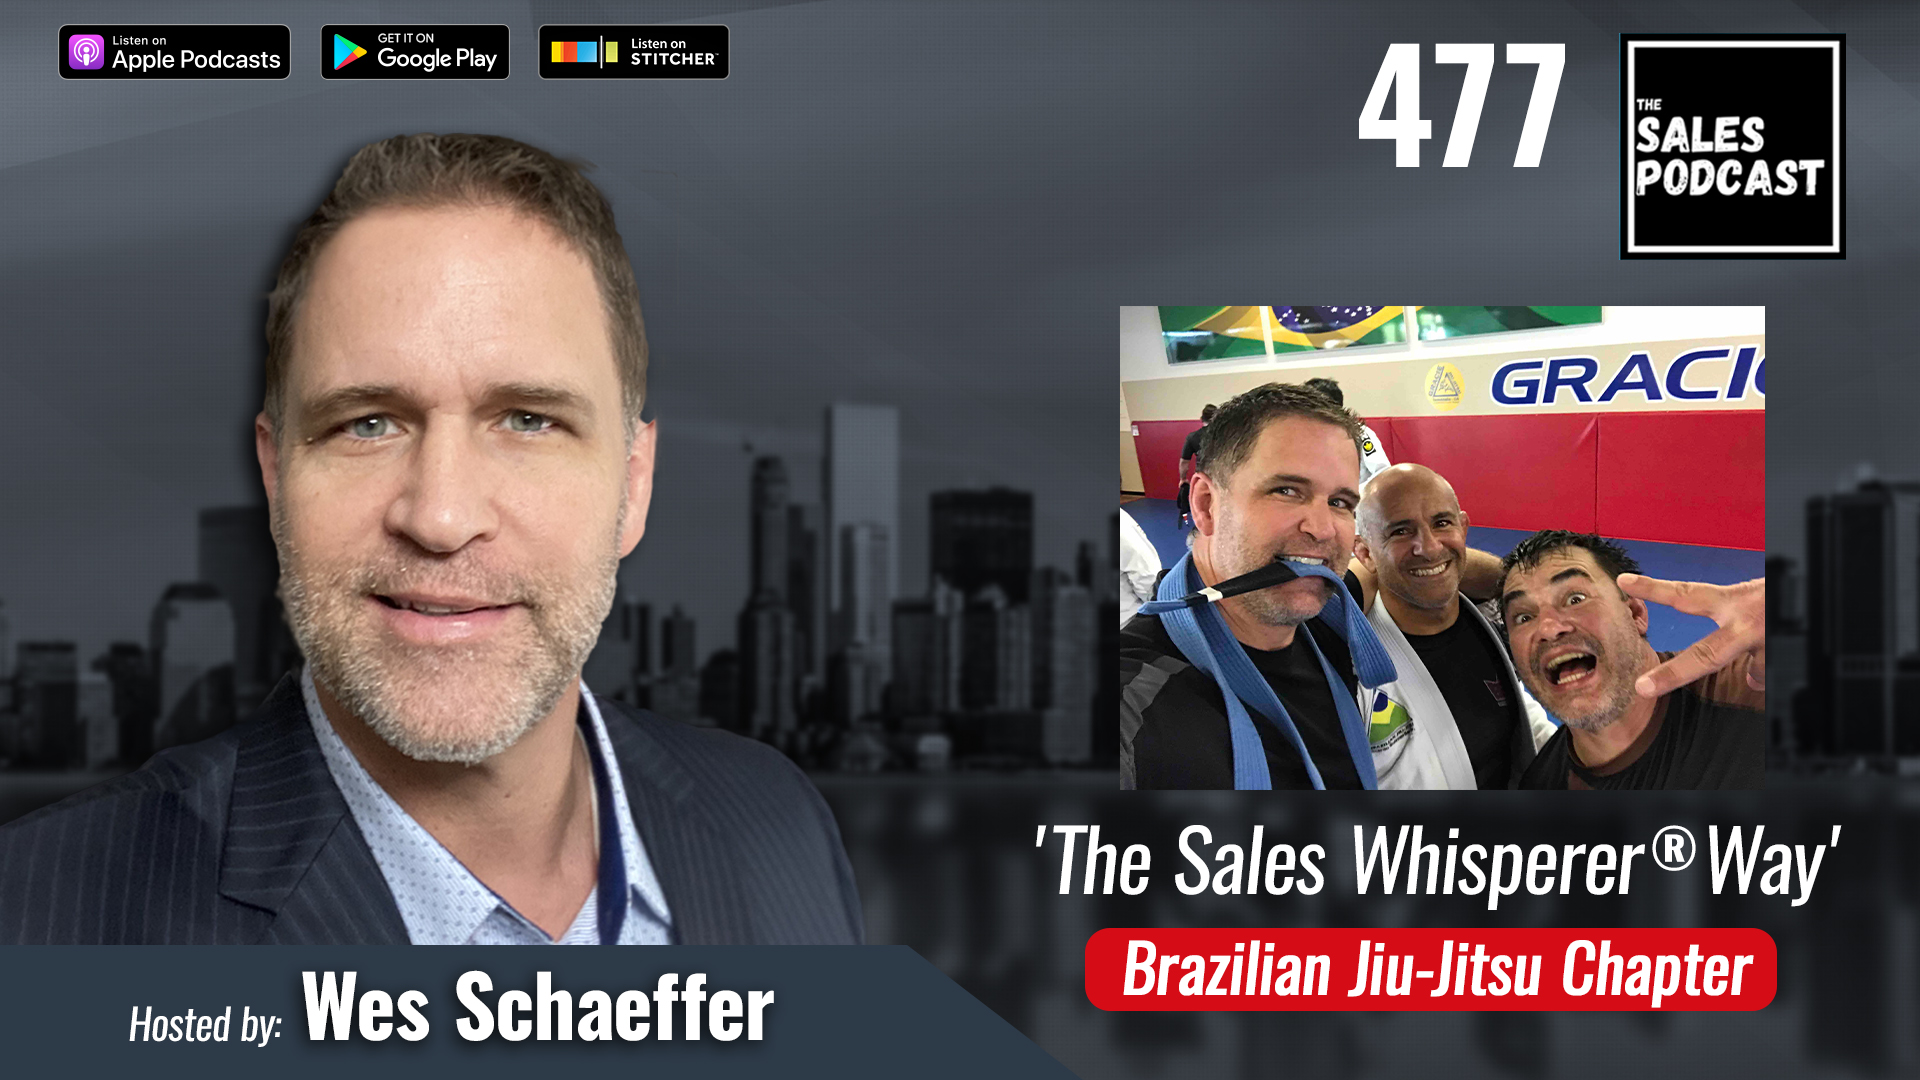 'The Sales Whisperer® Way' Brazilian Jiu-Jitsu Chapter with Wes Schaeffer, The Sales Whisperer®